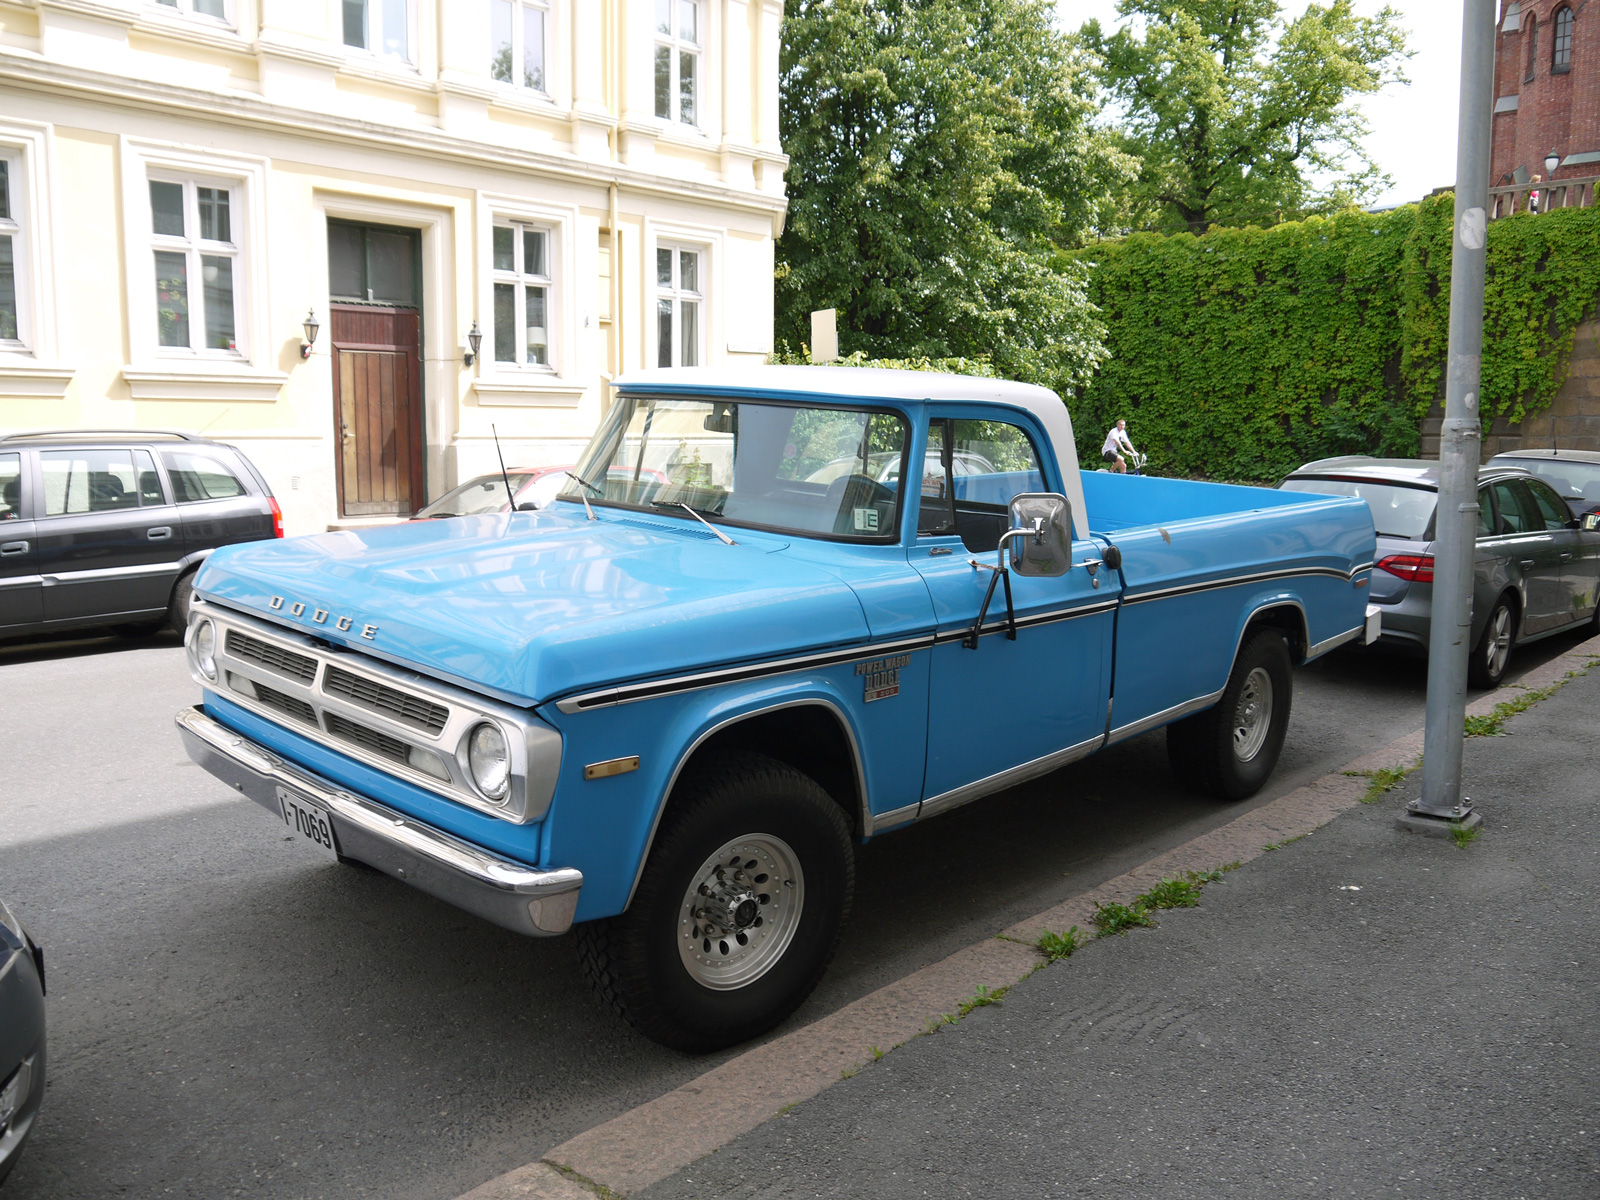 1970 Dodge Power Wagon W200 off road pickup oslo